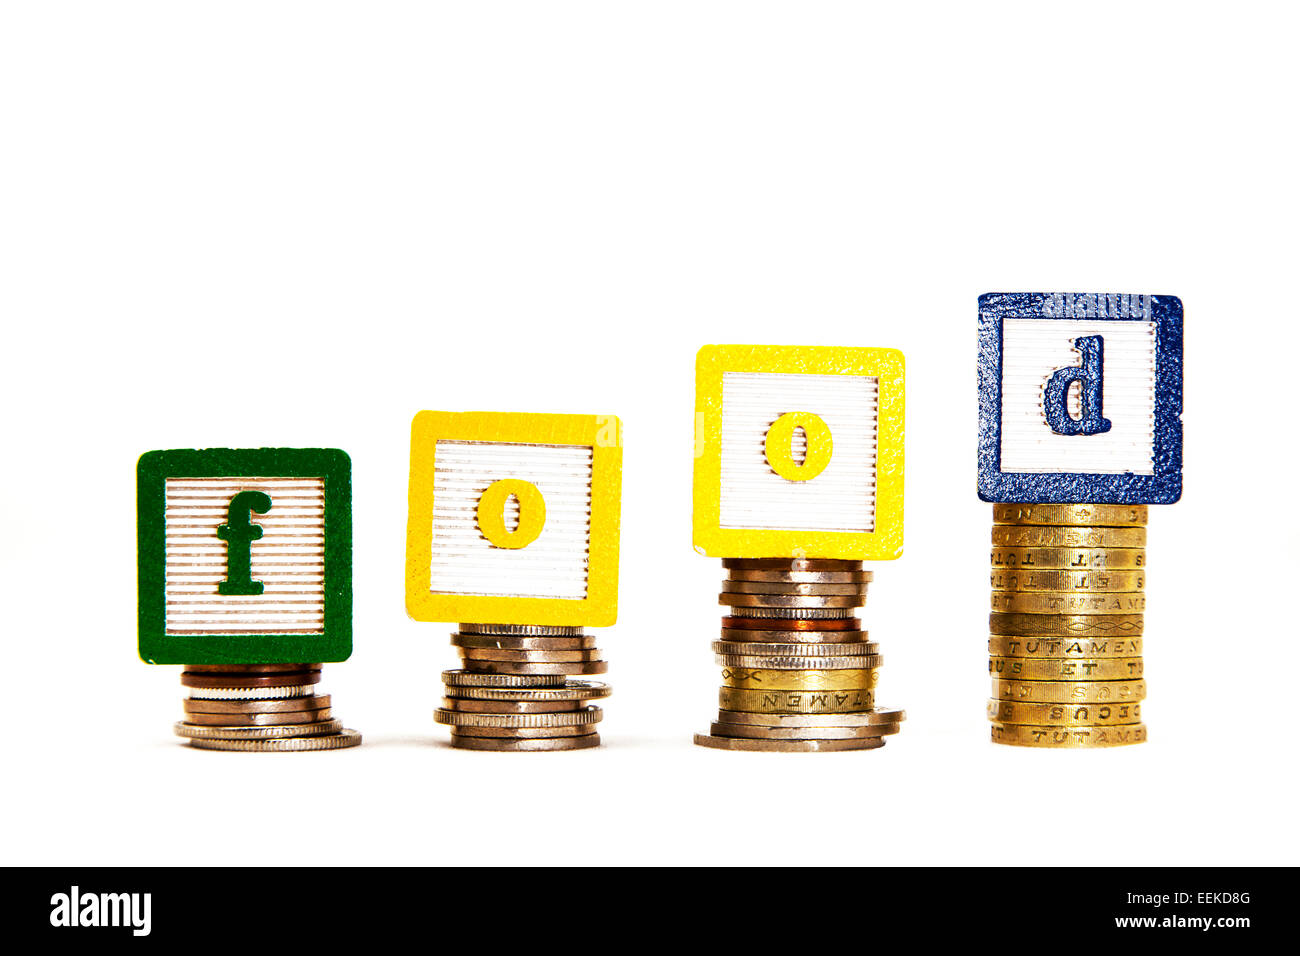 Rising food prices costing  more price rise spending feeding family word concept cut out copy space white background - Stock Image